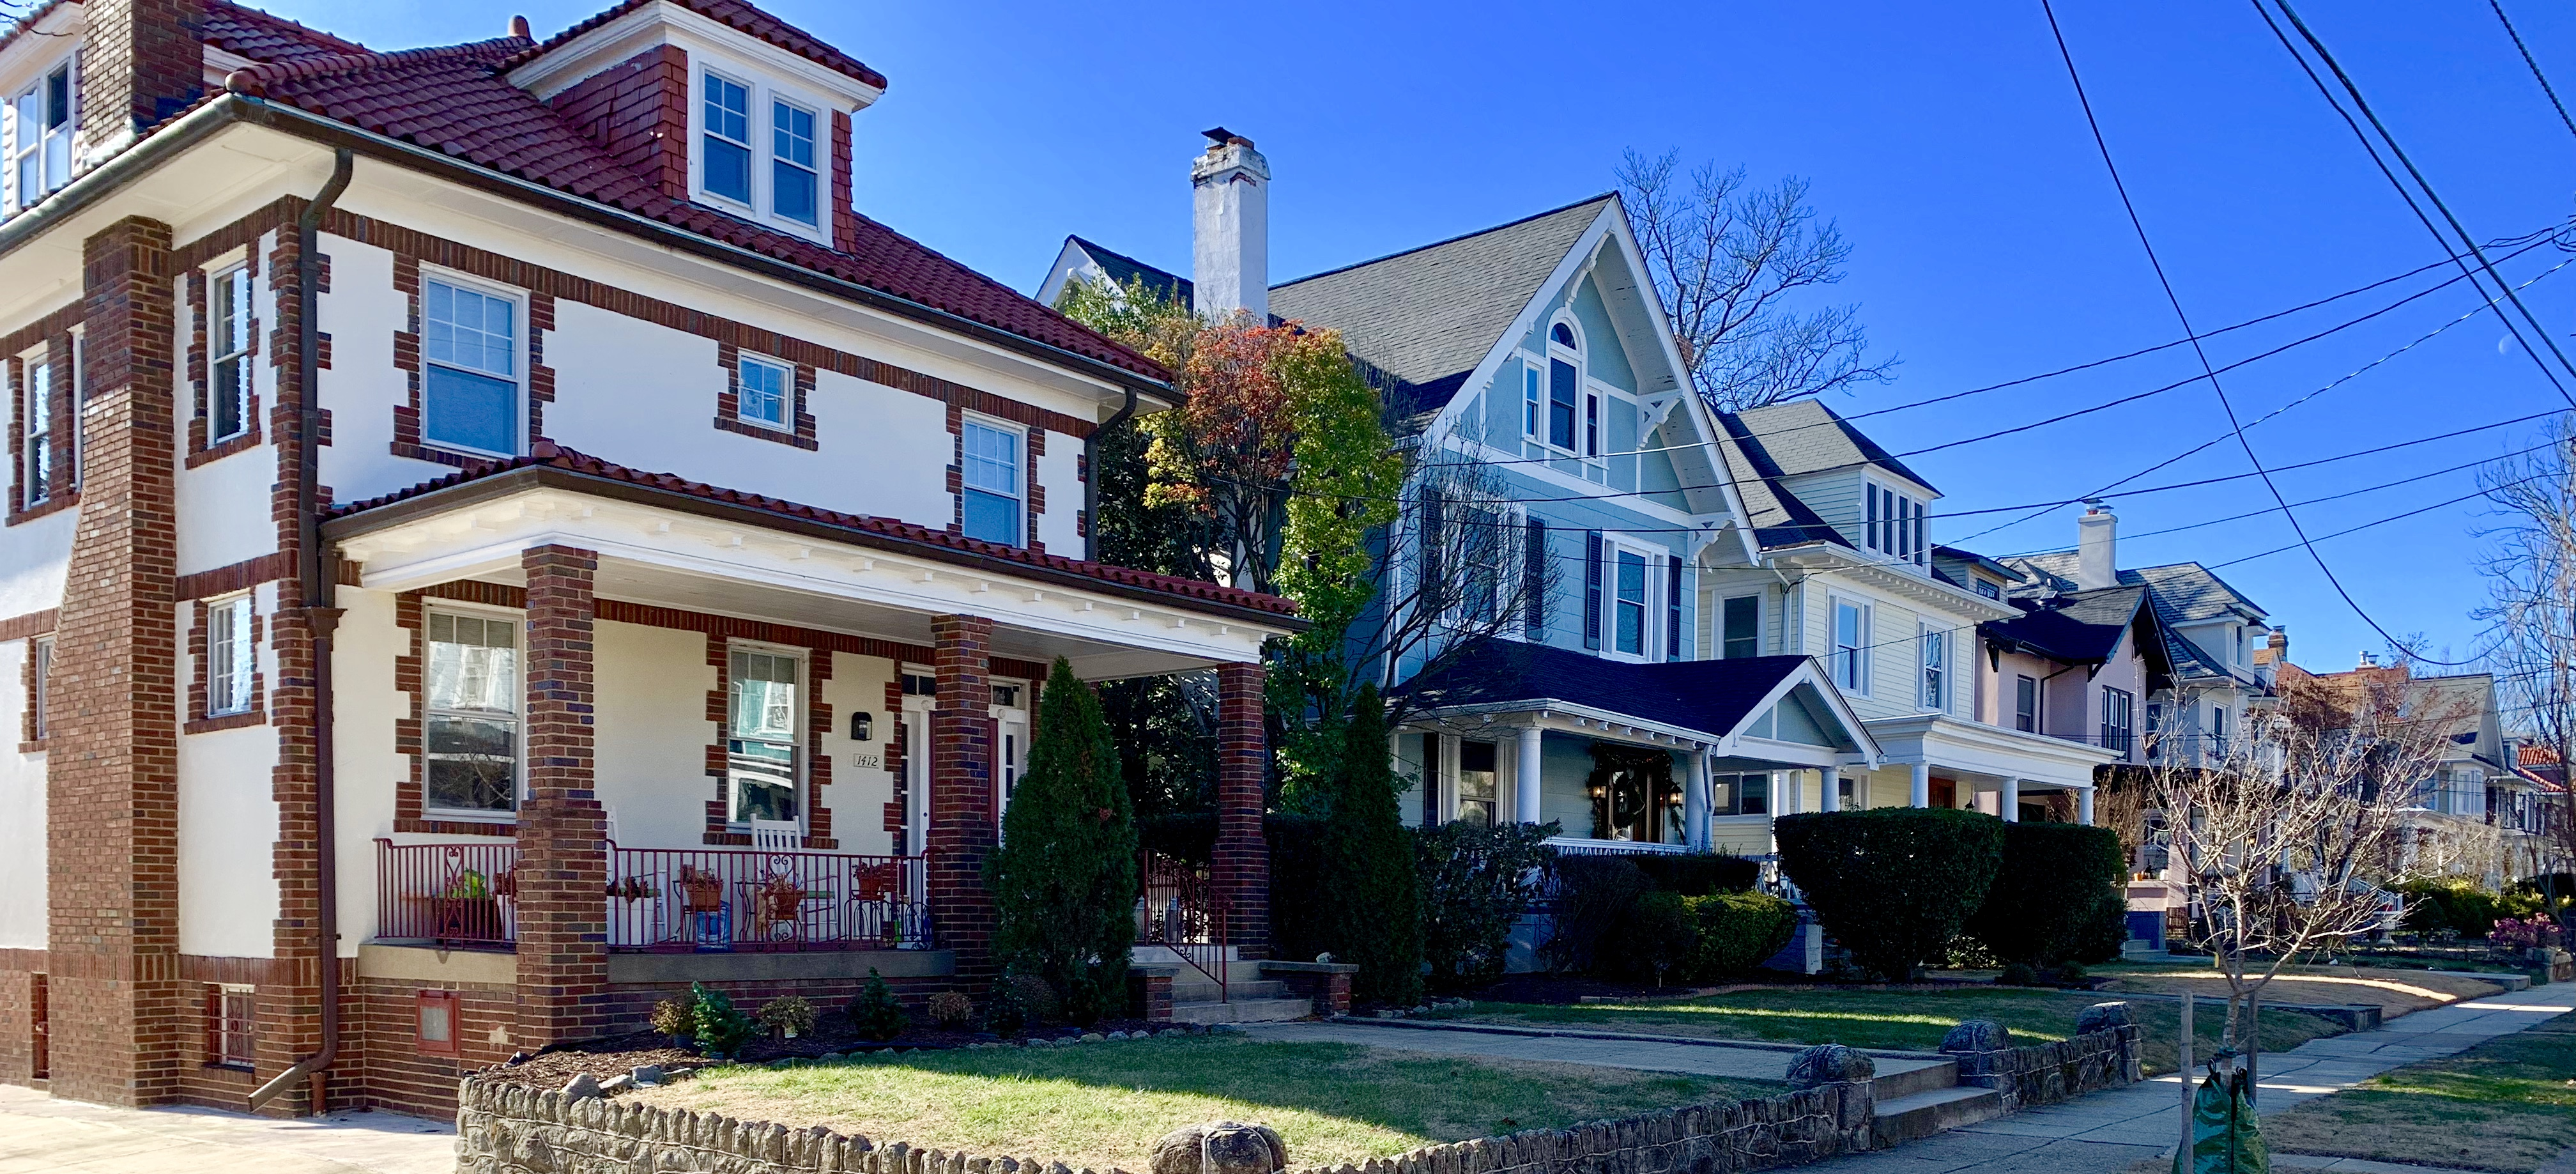 Craftsman Homes in Washington, DC. Madison Street in 16th Street Heights